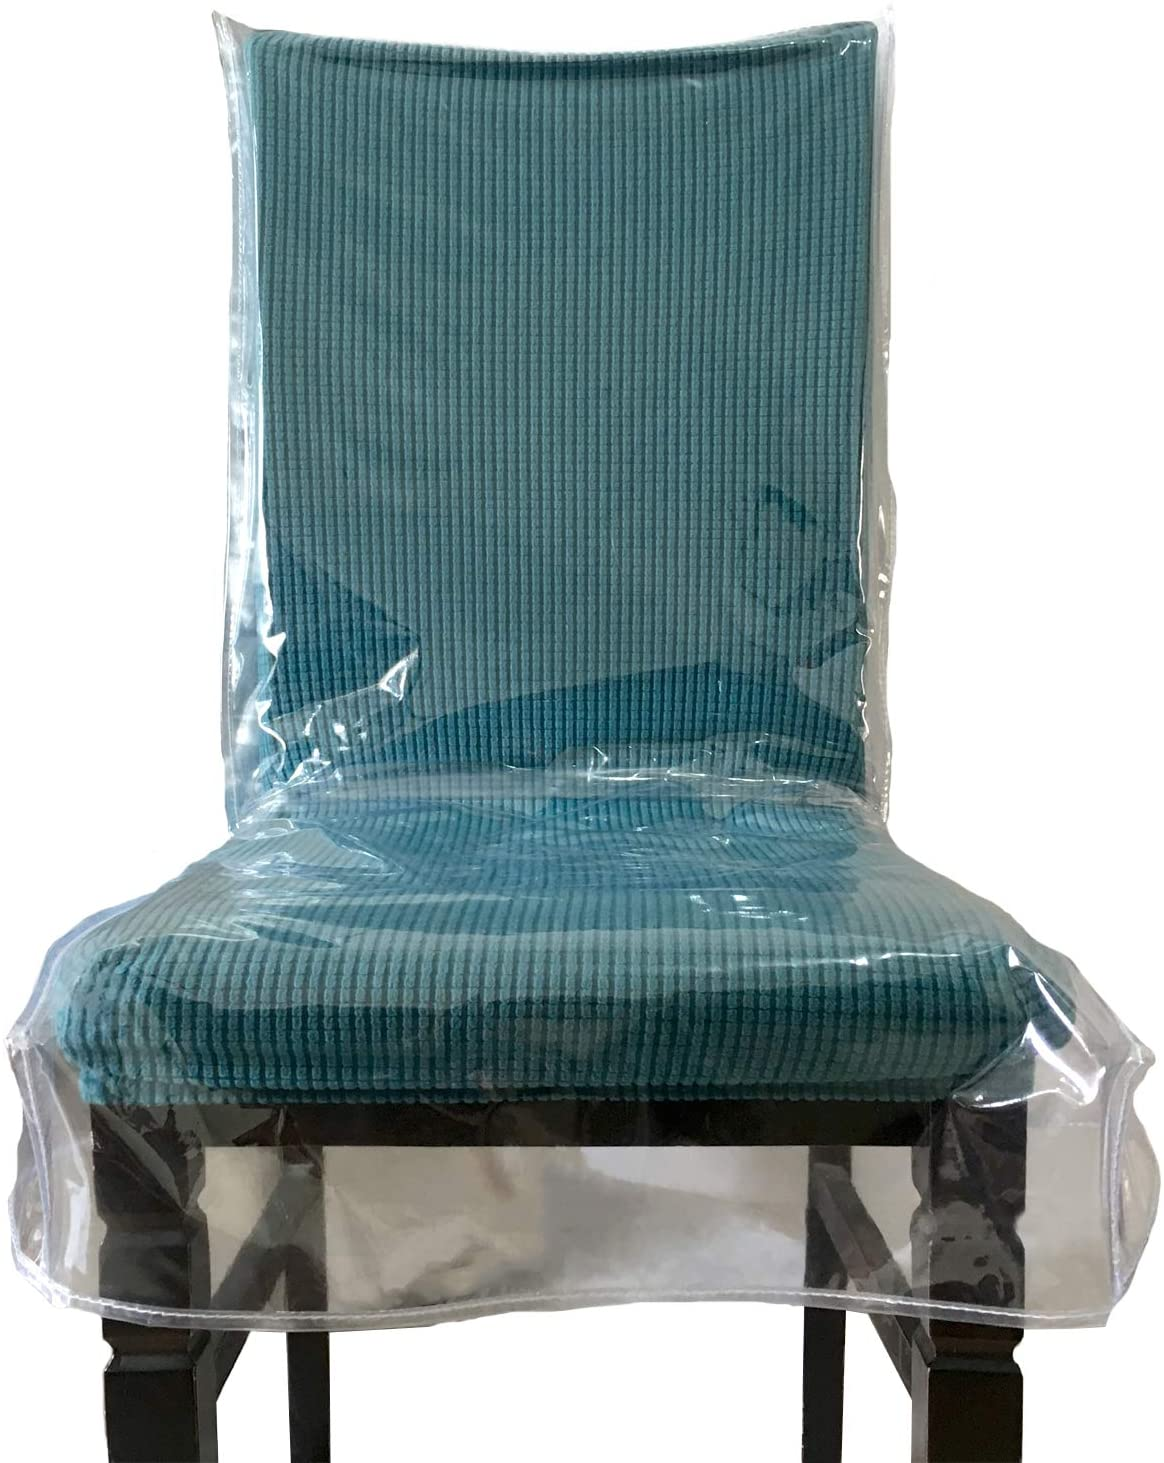 4 Pack Swanna Plastic Dining Chair Covers with Backrests,Clear PVC Seat Chair Protector Waterproof Cover,Fit W//23 x D//20 Inch